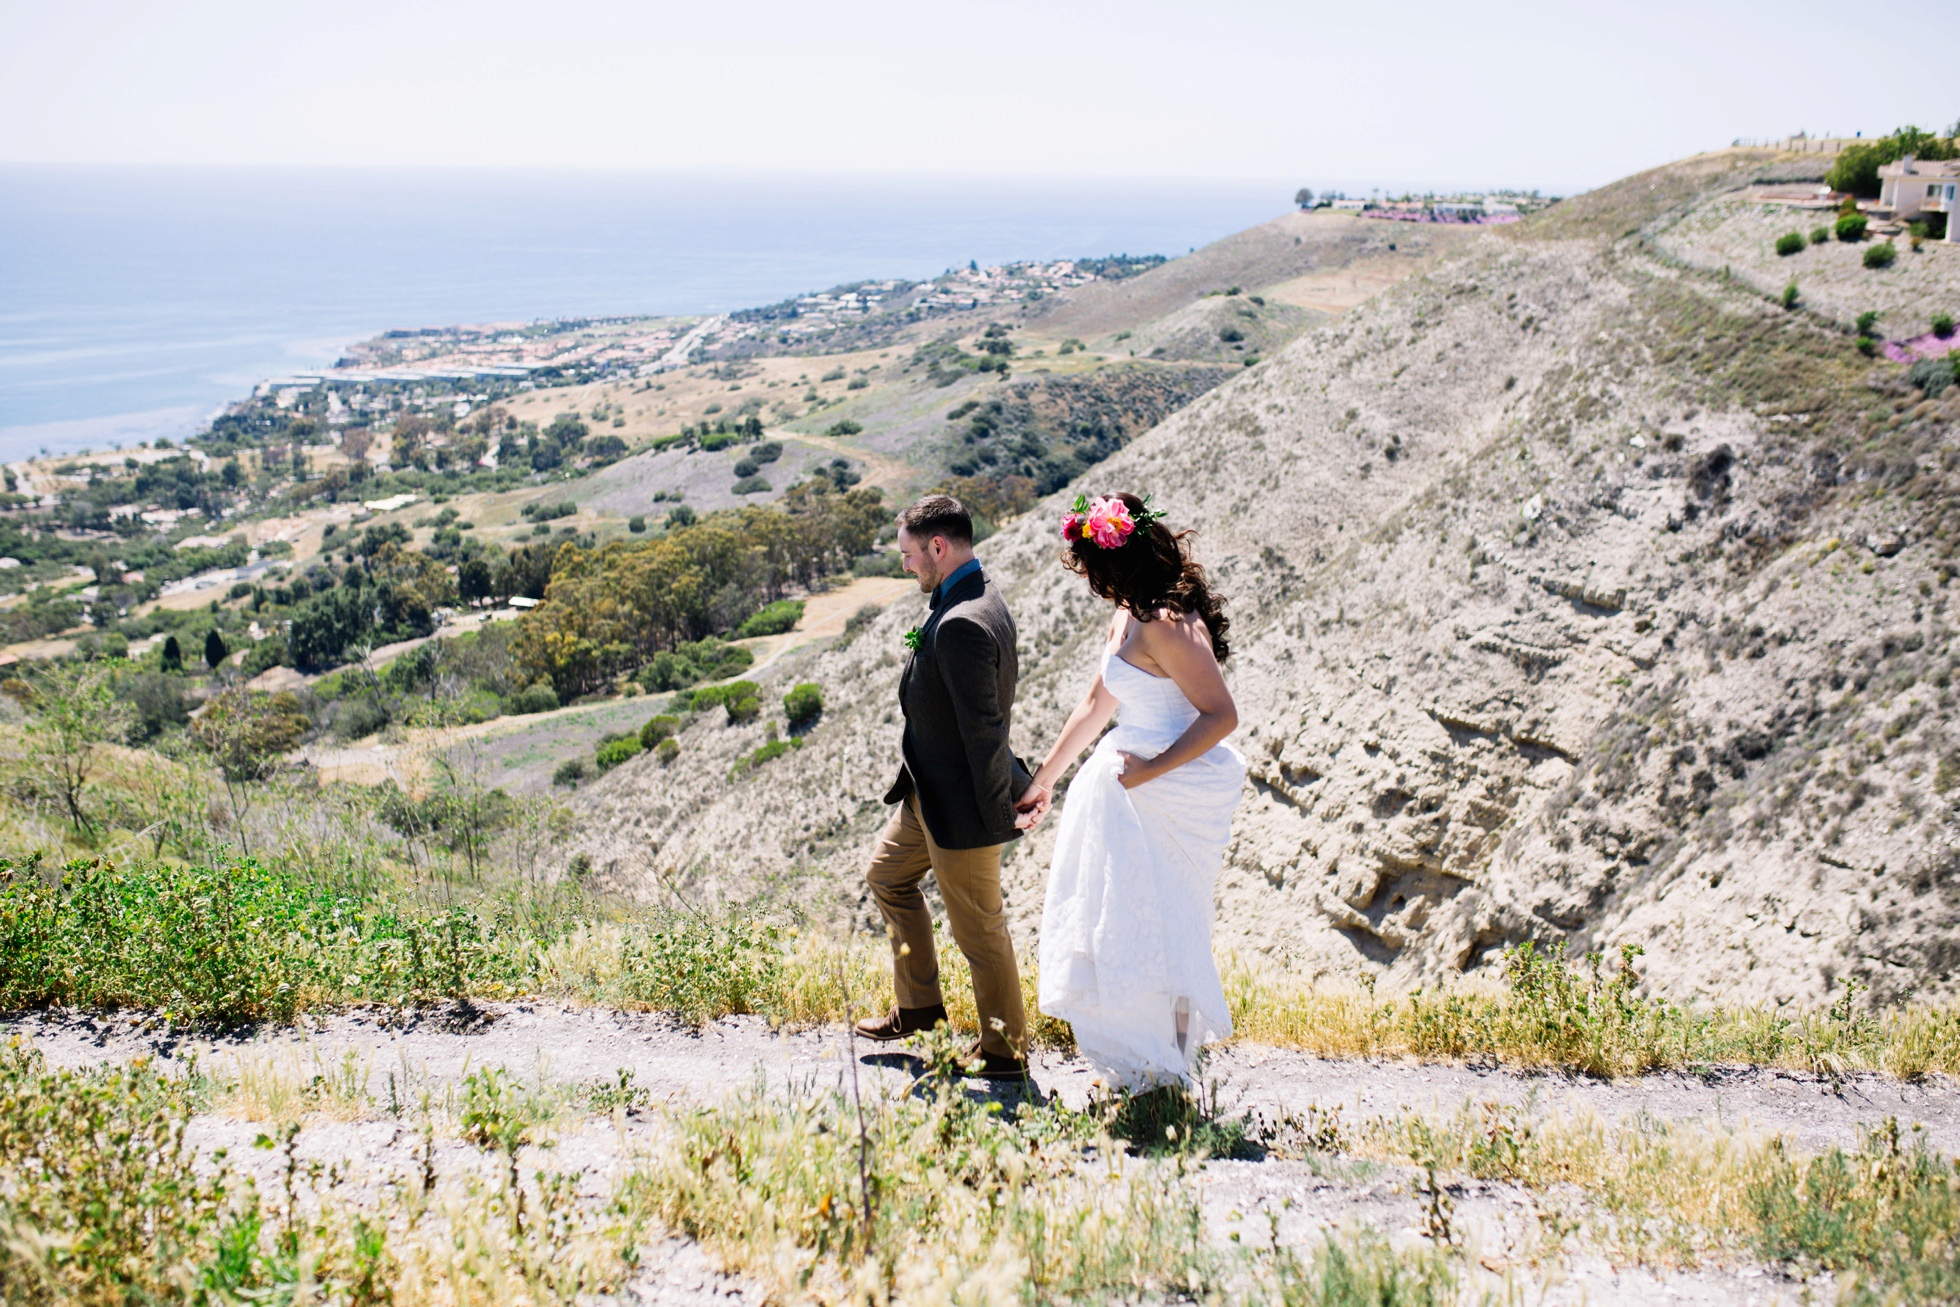 Palos Verdes Southern California Destination Wedding | brittneyraine.com 0020